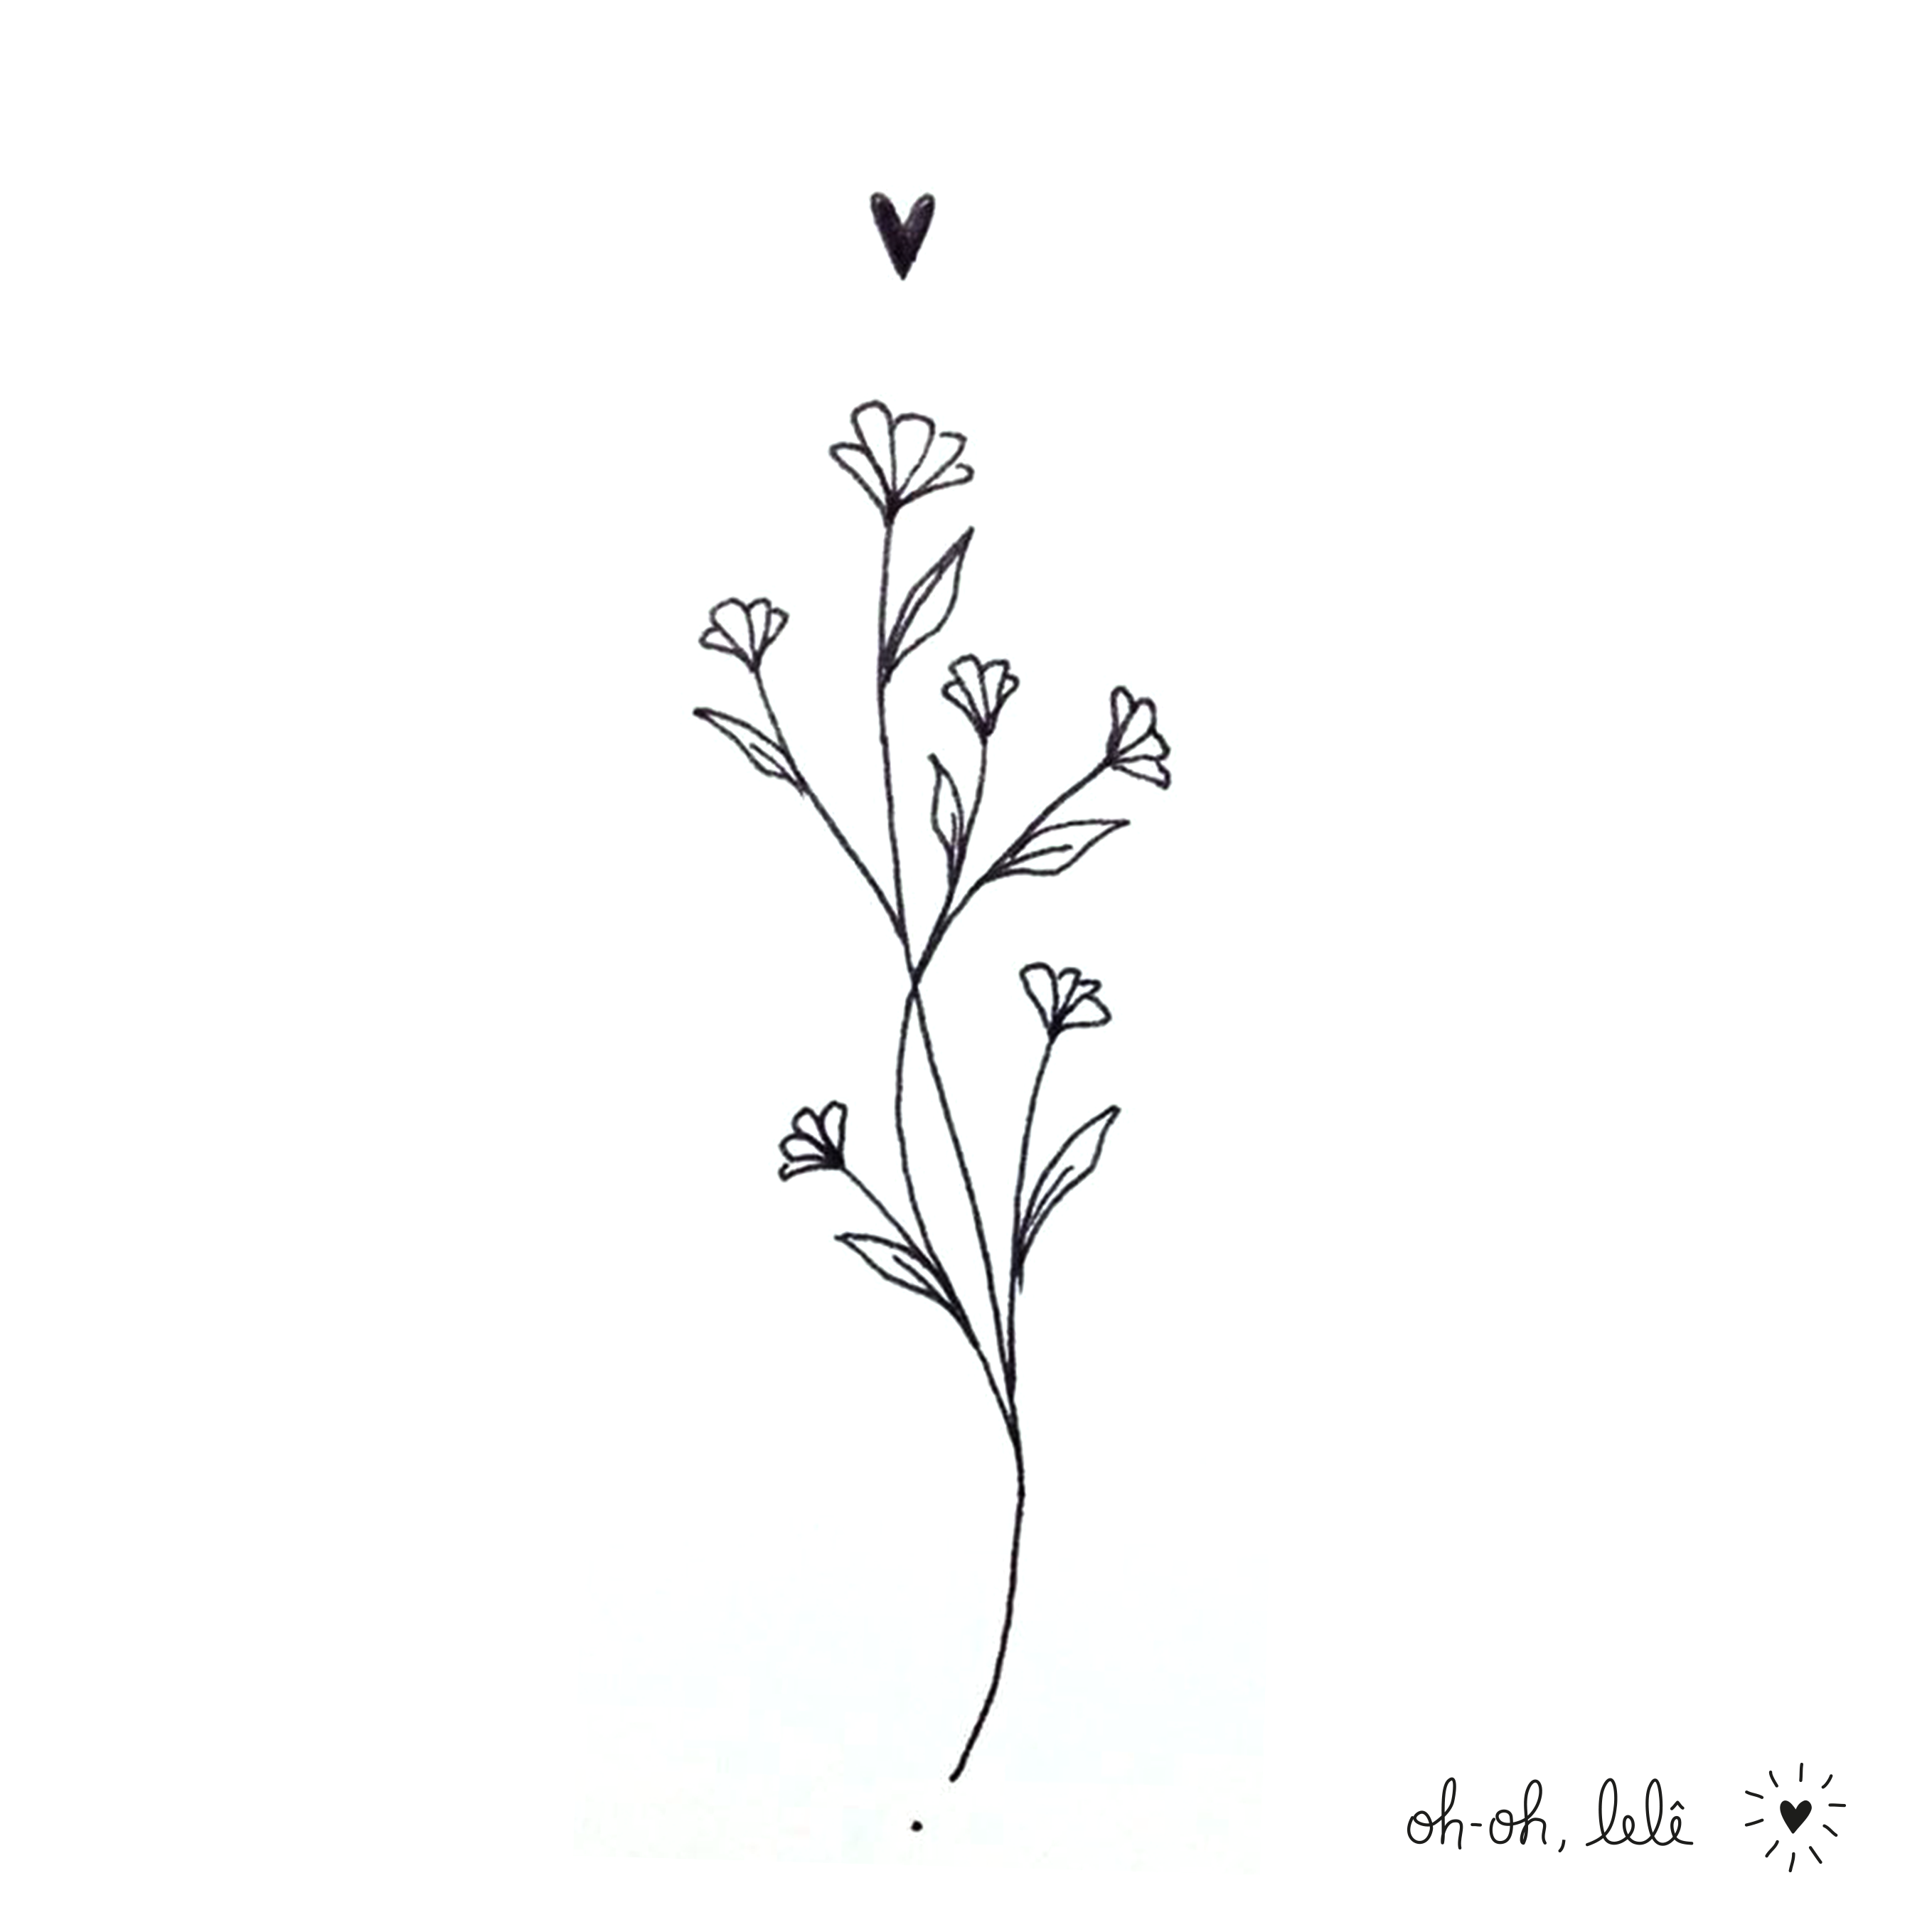 Wildflower Line Drawing : Letícia heger oh lelê flowers pinterest